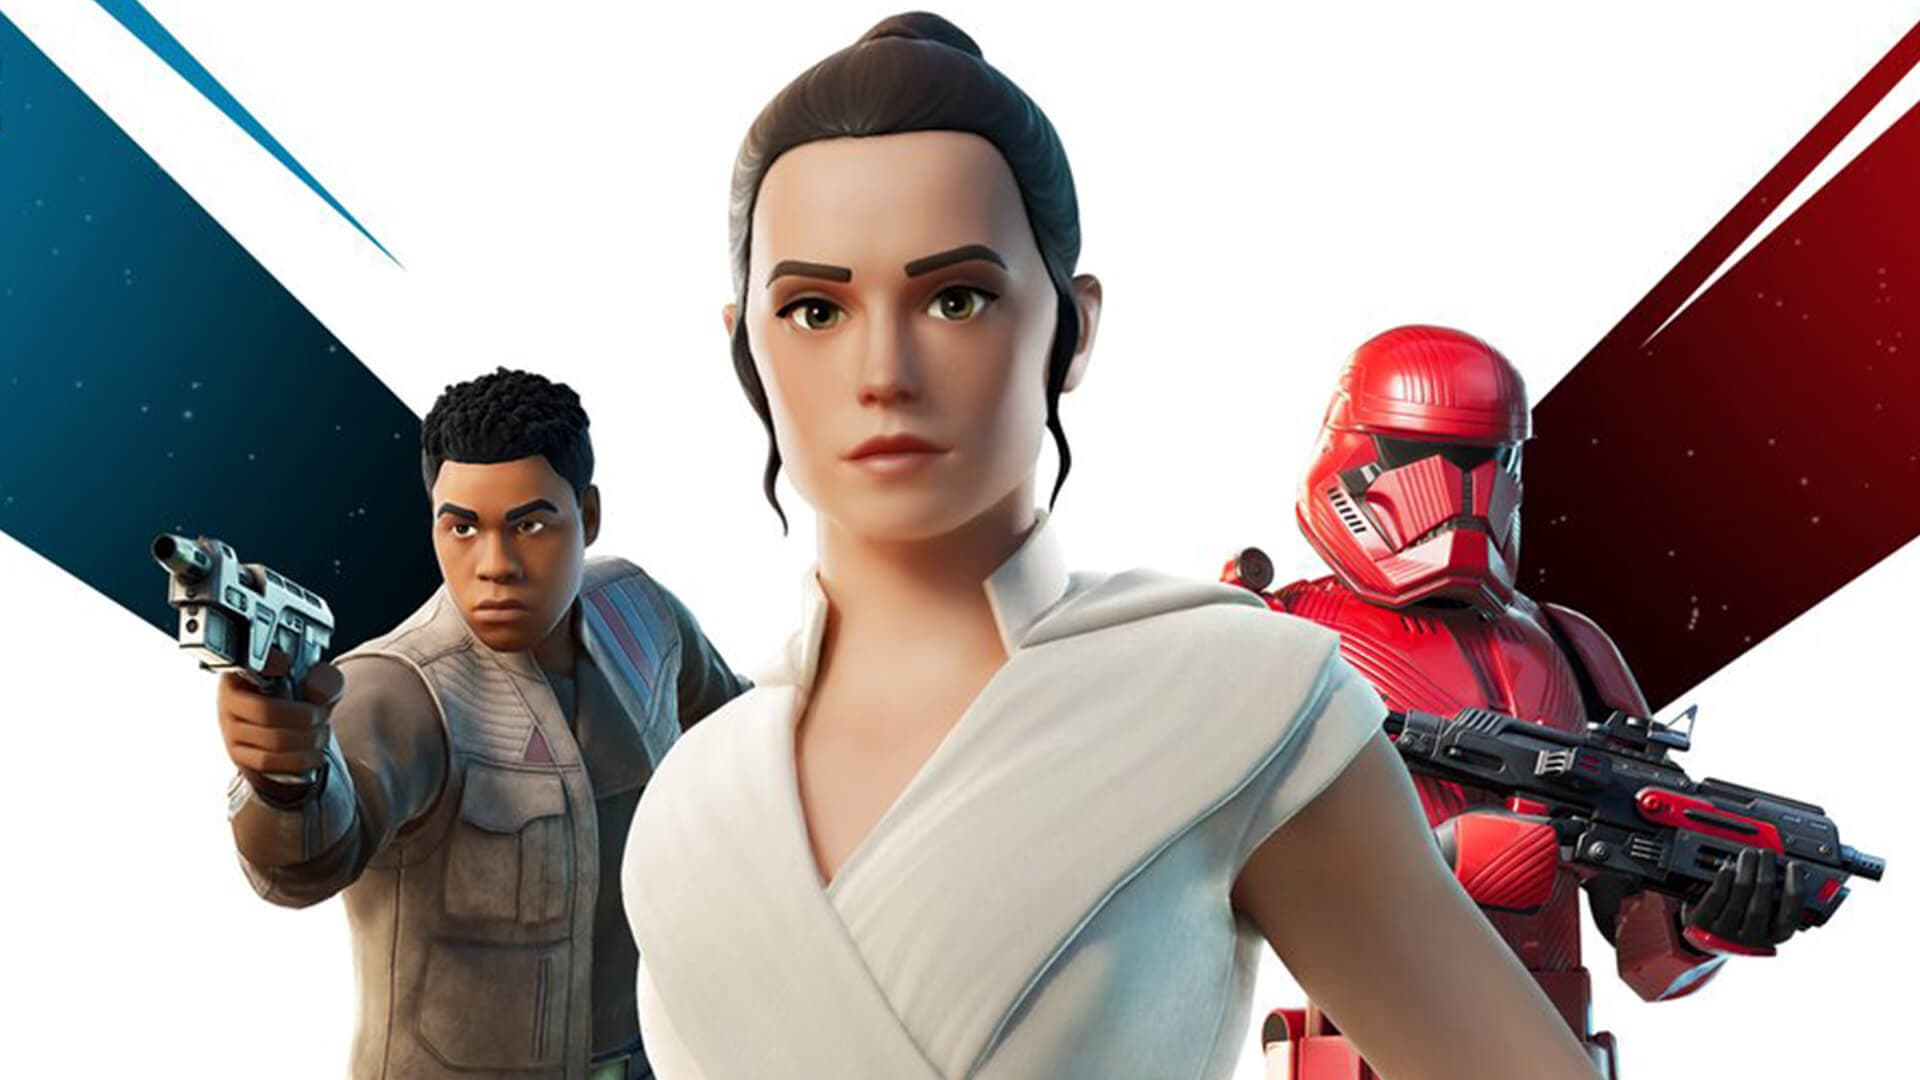 Ya están disponibles los artículos de Star Wars The Rise of Skywalker por tiempo limitado en Fortnite 8